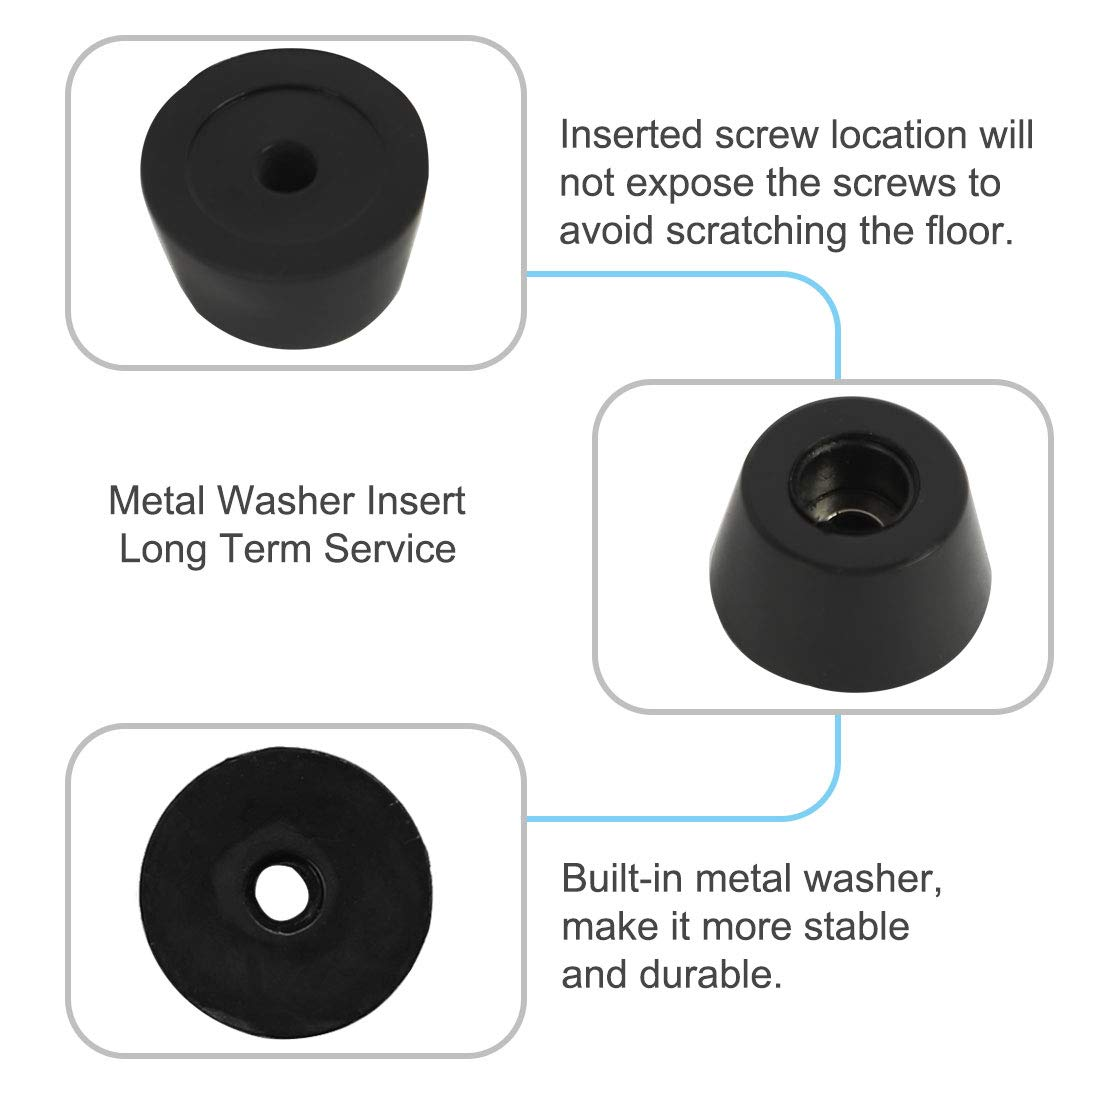 D24x20xH13mm uxcell 40pcs Rubber Feet Bumper Buffer Feet Furniture Table Cabinet Leg Pads Anti-slip with Metal Washer